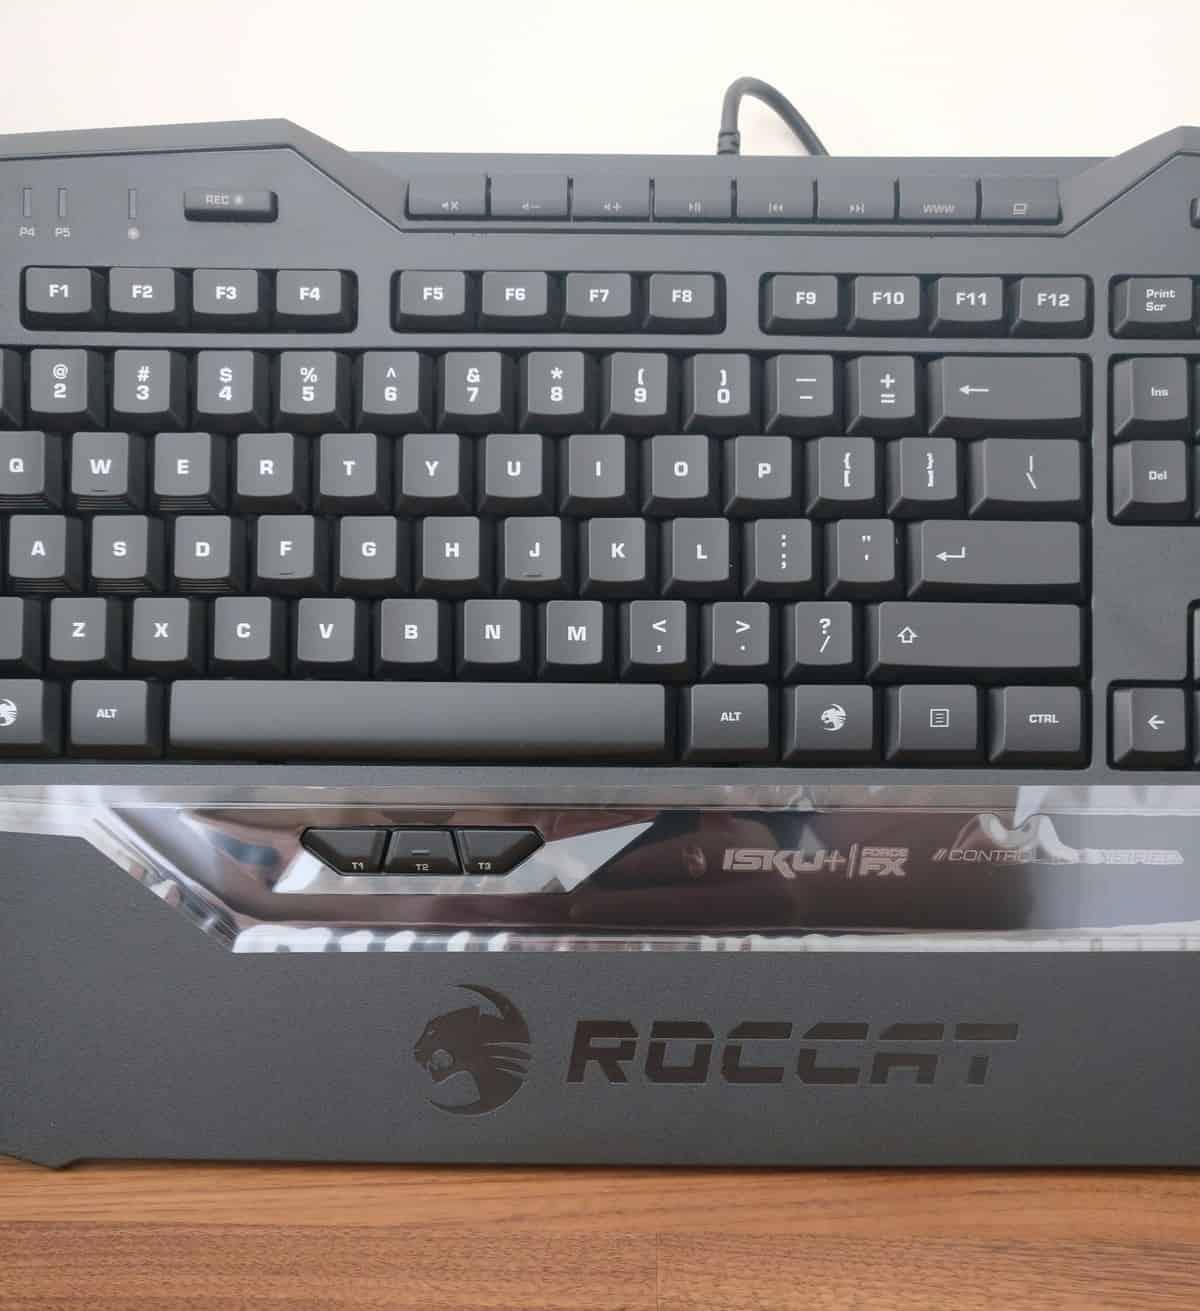 Roccat-Isku-fx-plus-Photos10 Roccat Isku+ Force FX Gaming Keyboard Review